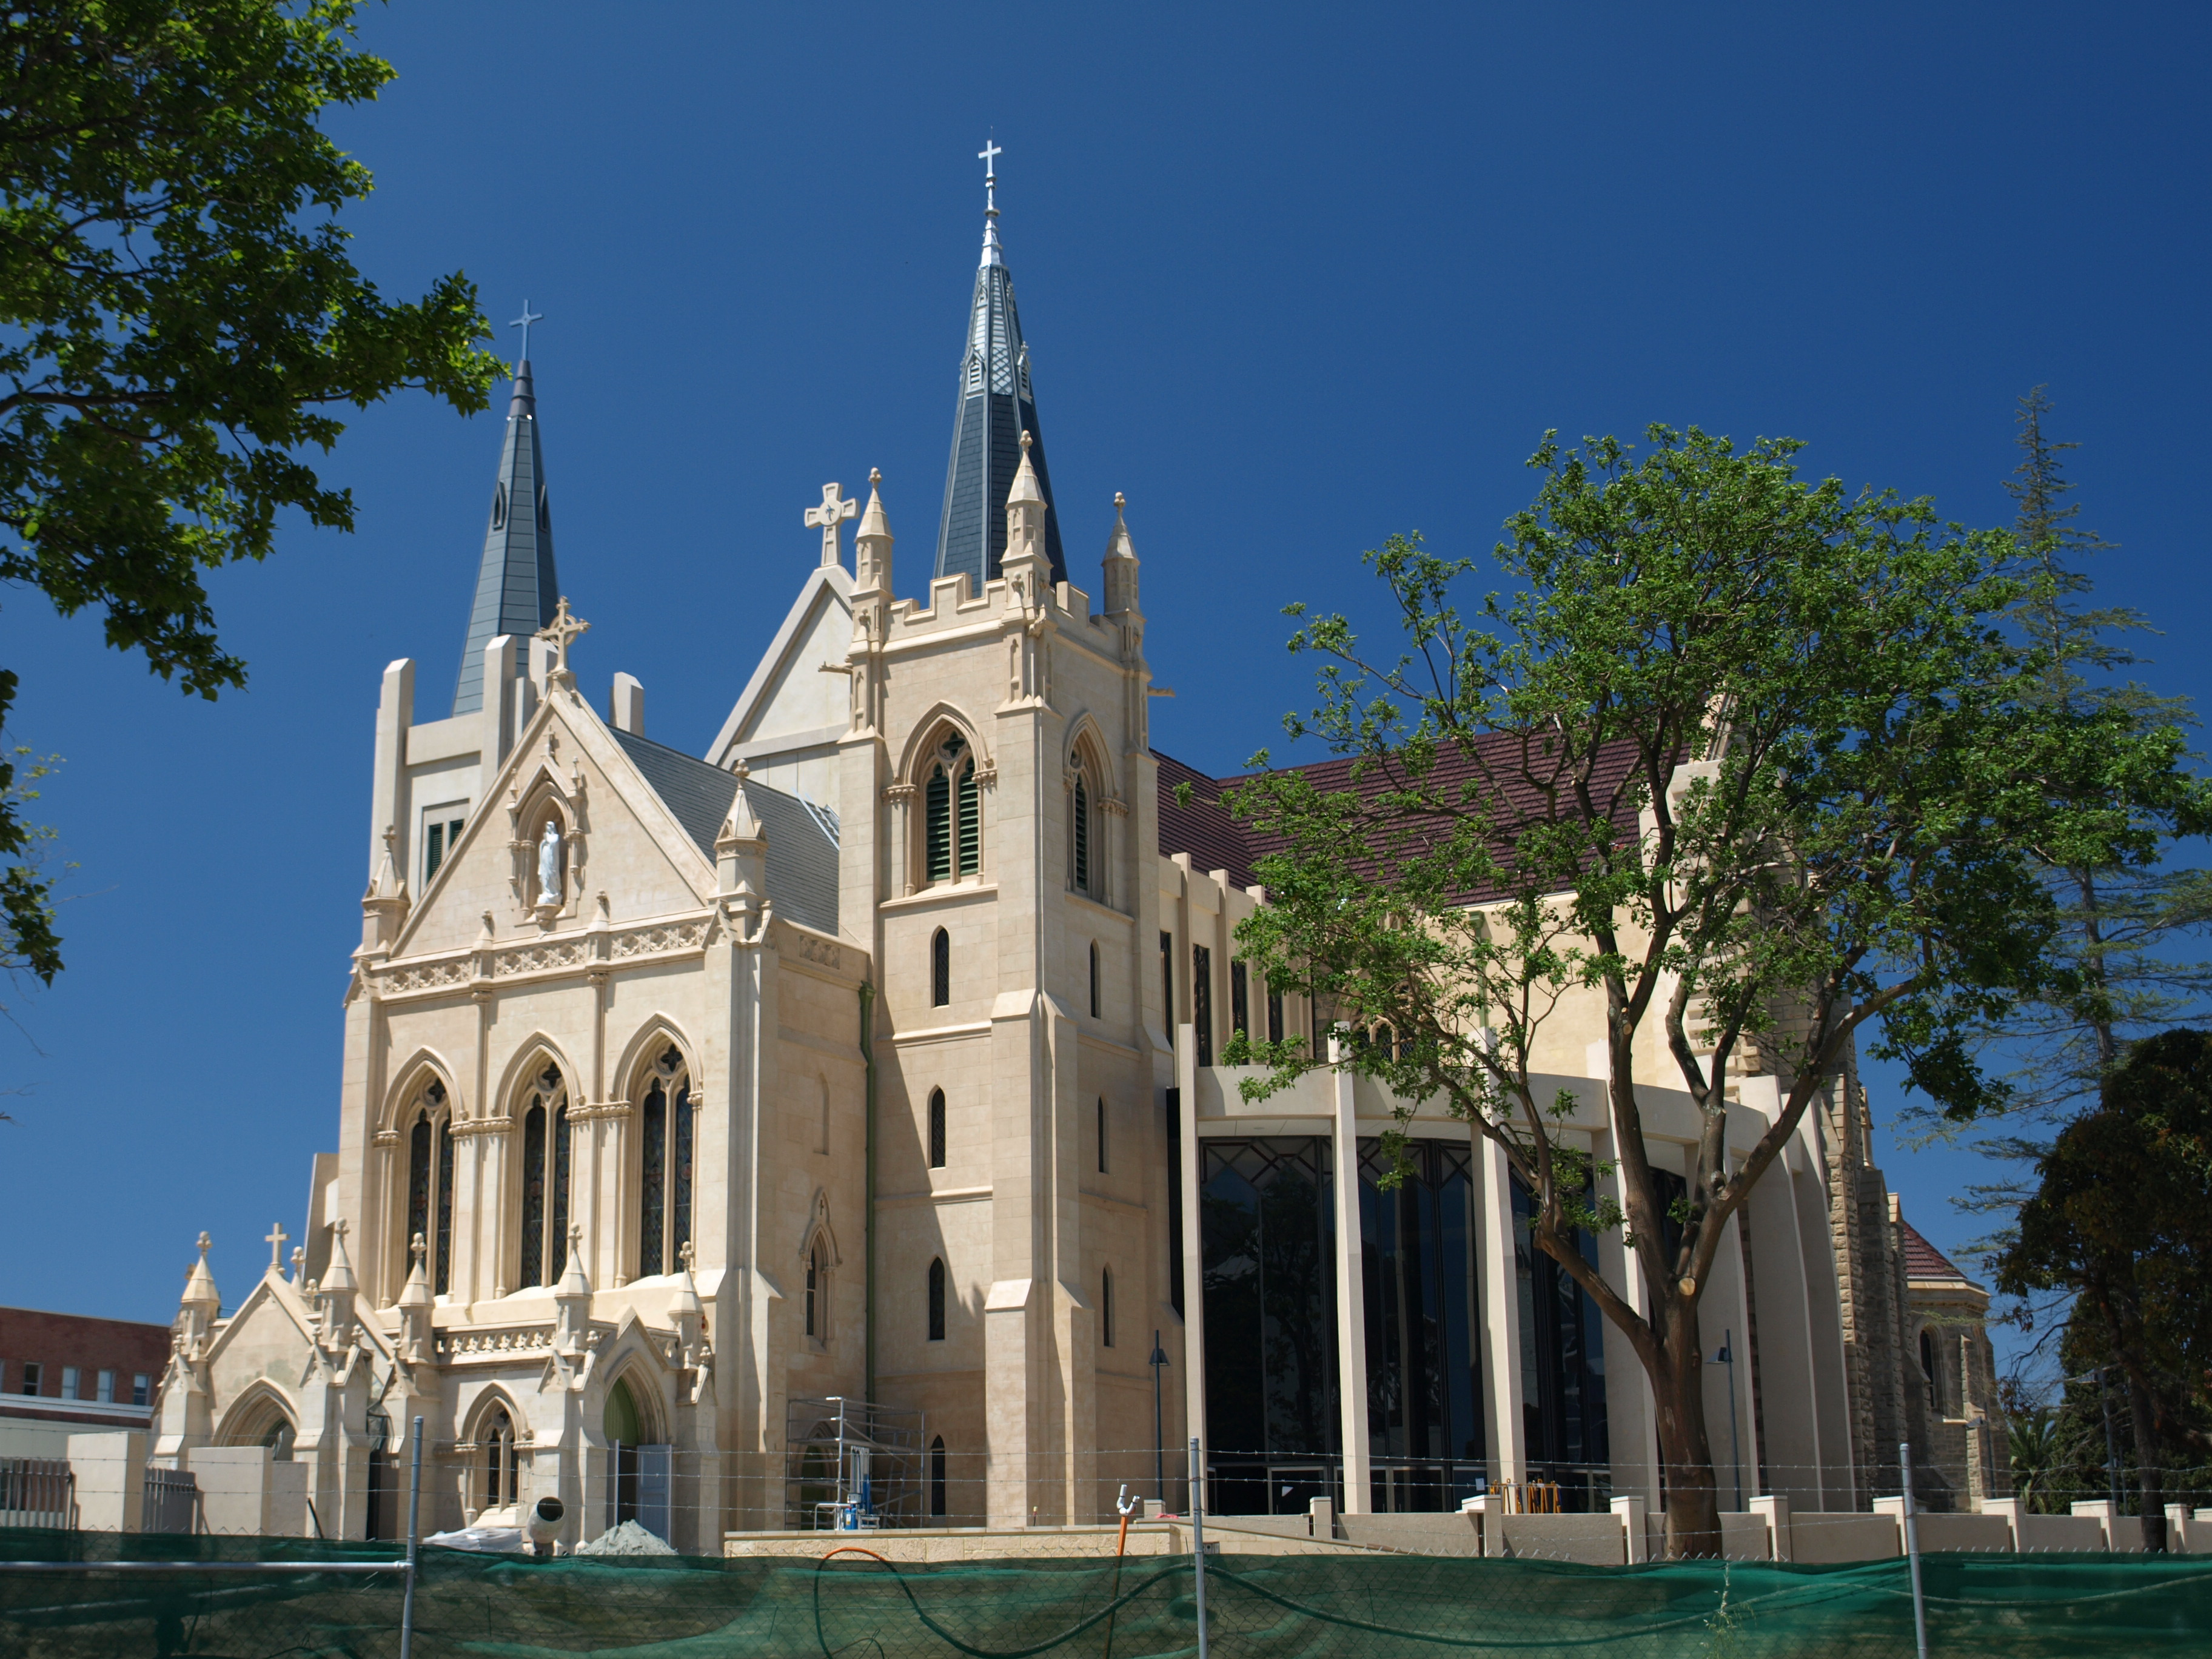 Saint Marys Australia  City new picture : St Mary's Cathedral, Perth 2009 2 Wikimedia Commons